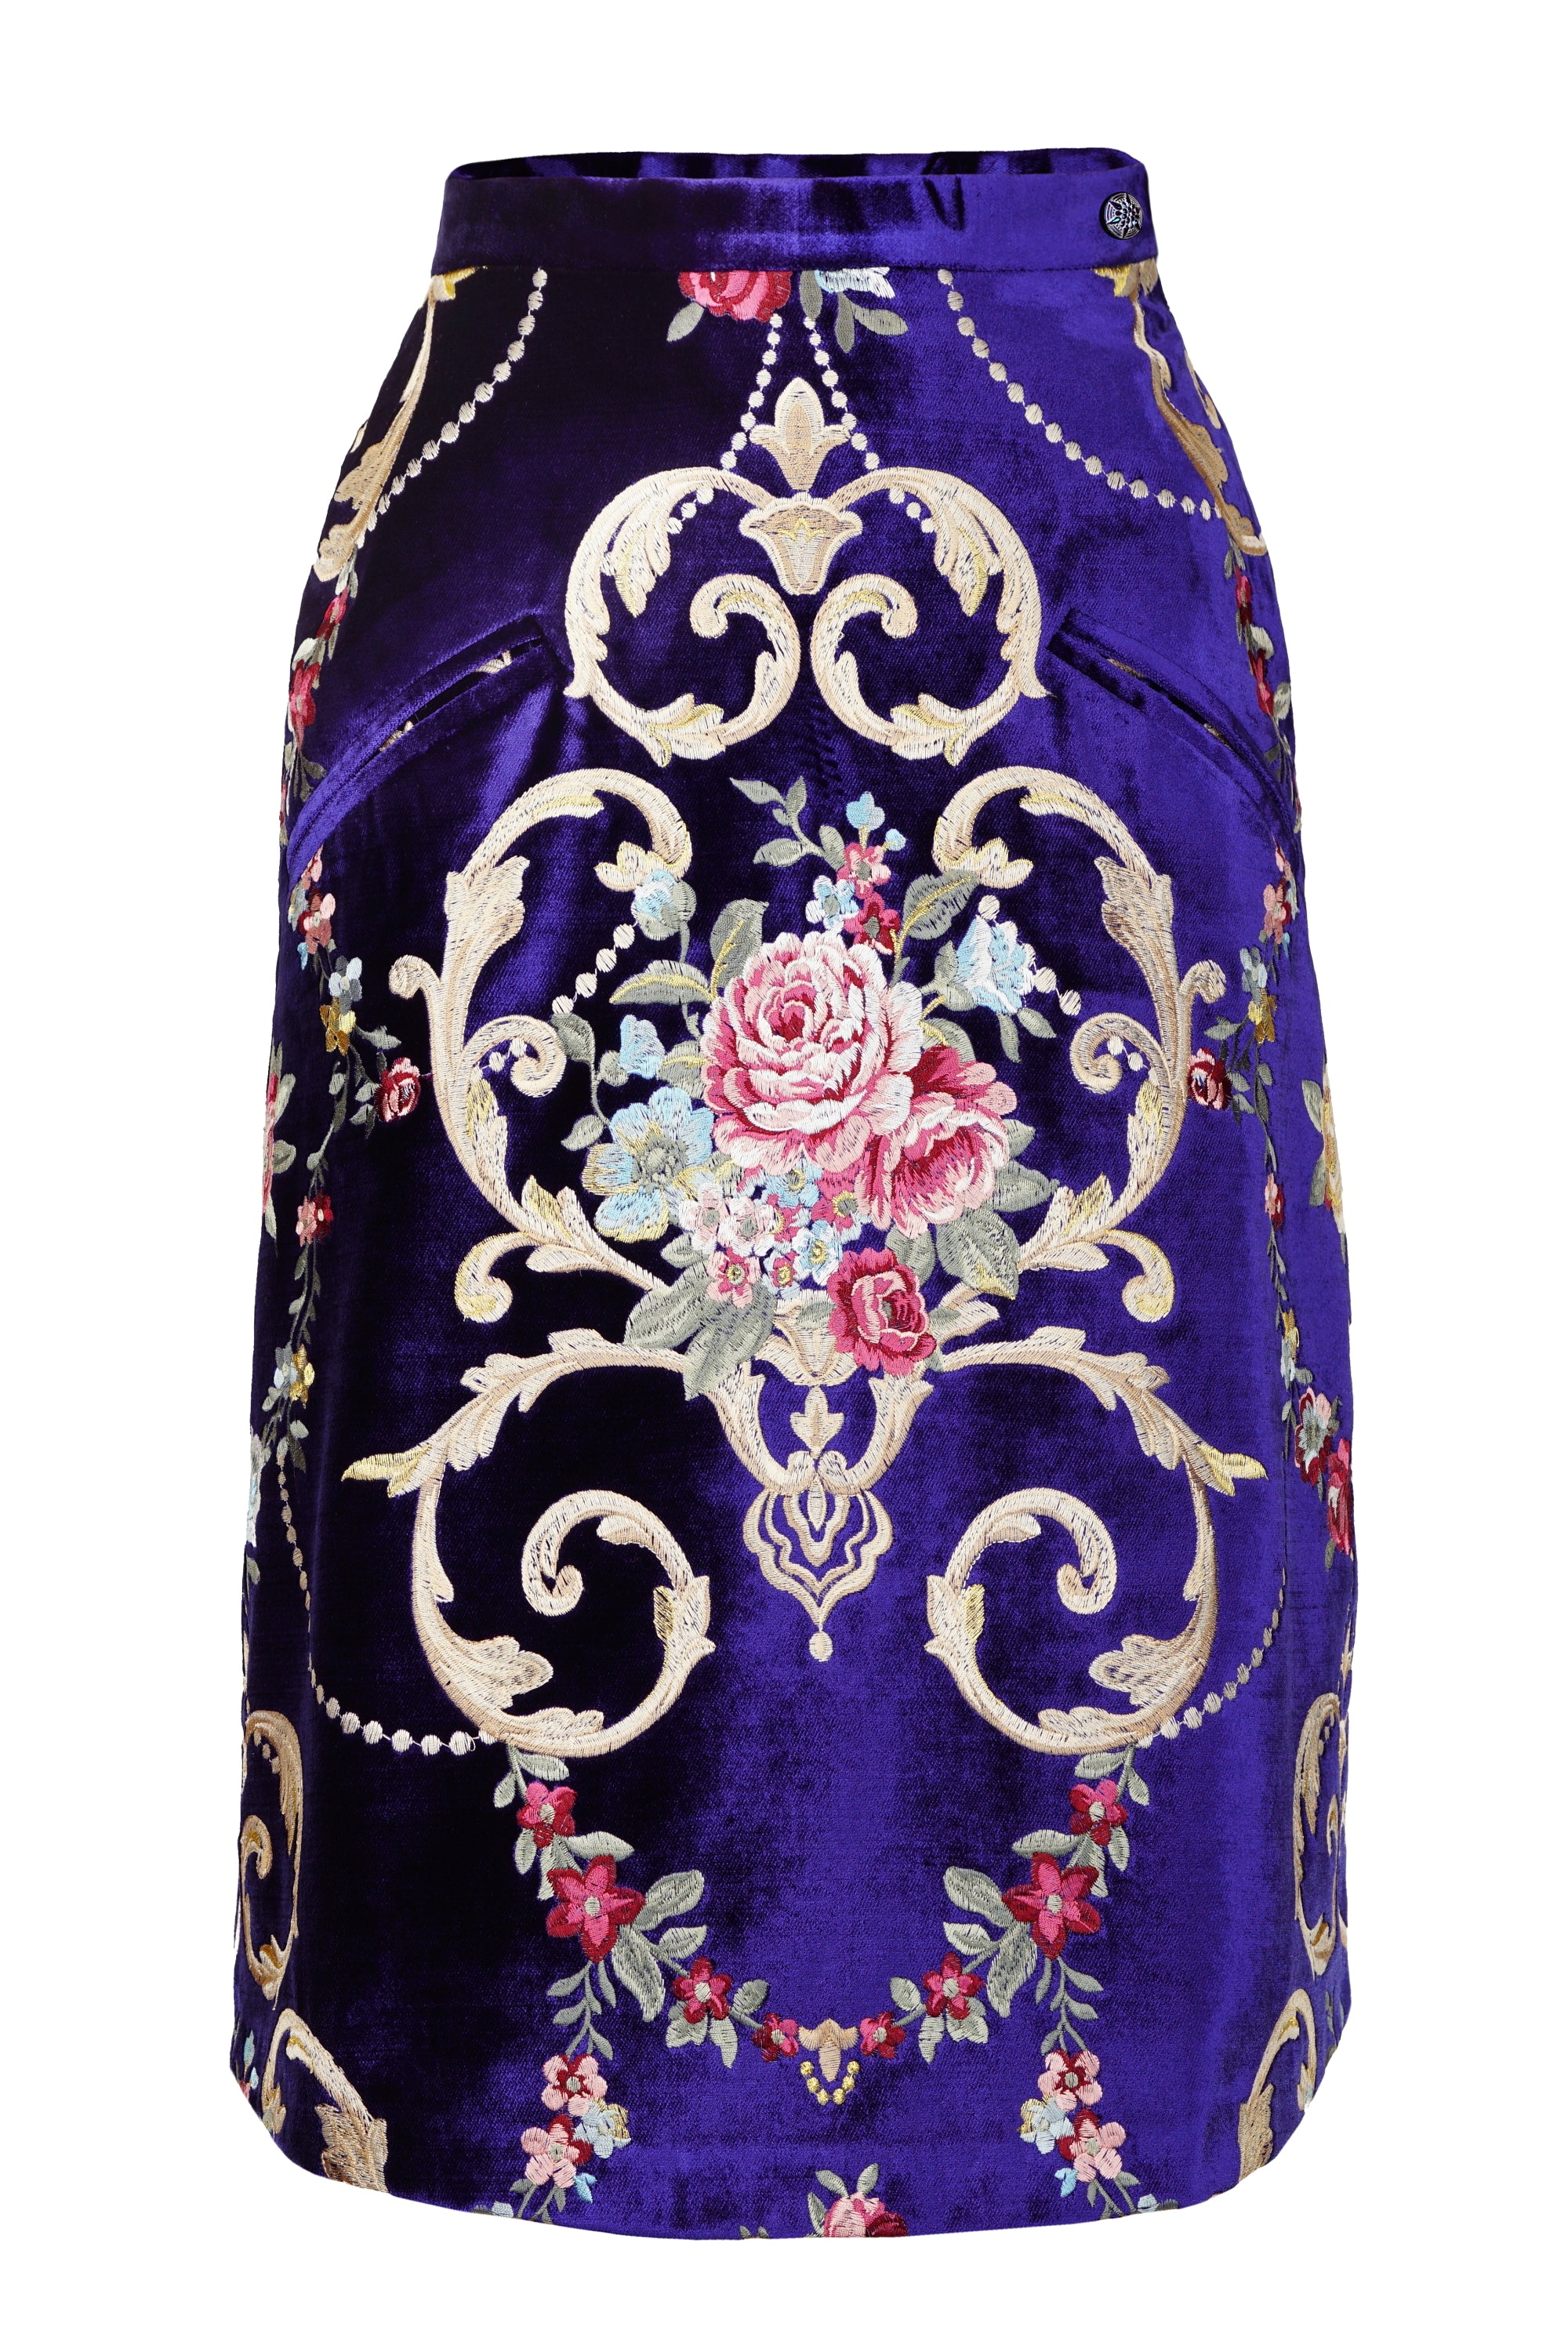 ROYAL BLUE VELVET EMBROIDERED SKIRT